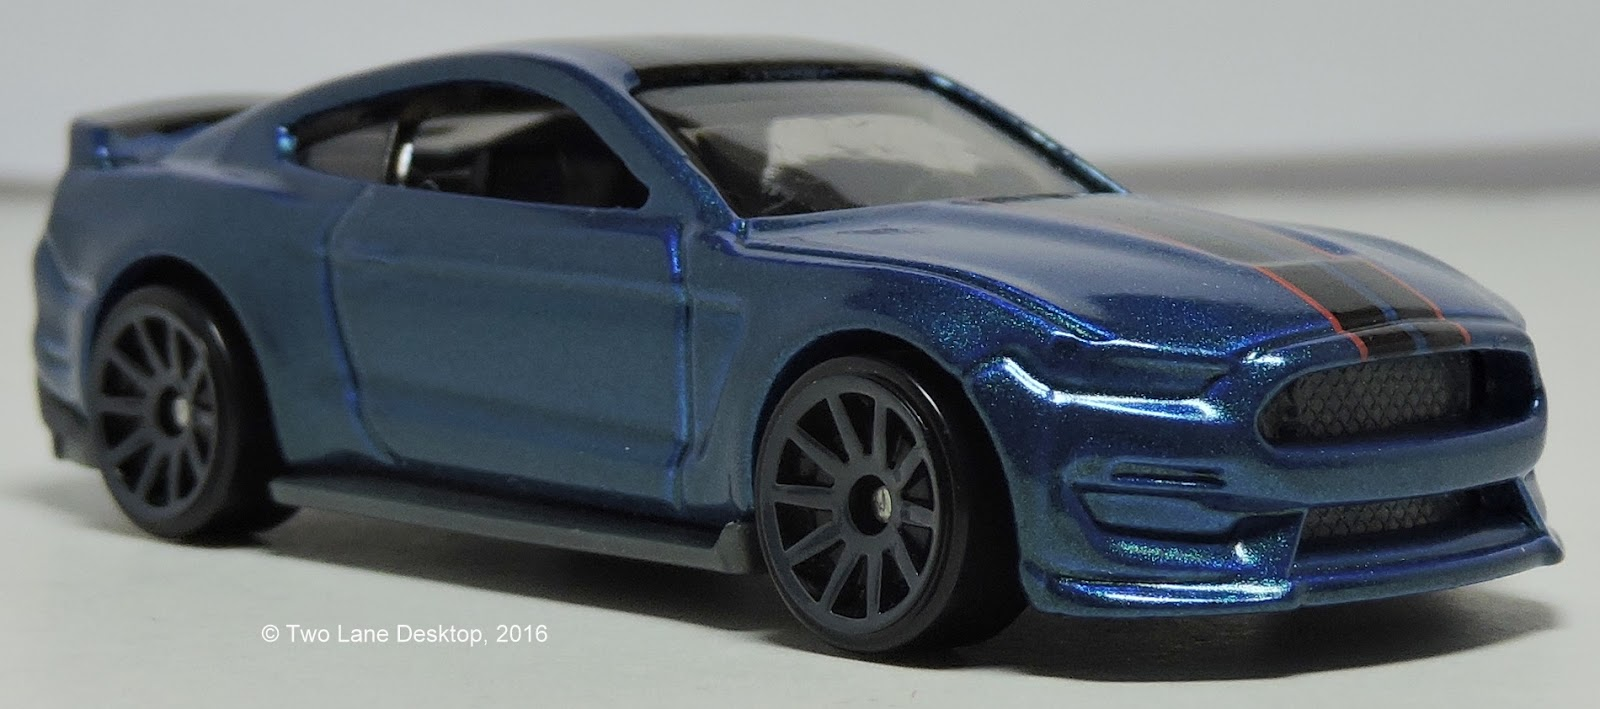 As Always When The Newest Mustang Comes Out Hot Wheels Has To Make A Replica Of Each New Model Latest Is First Variant For 2015